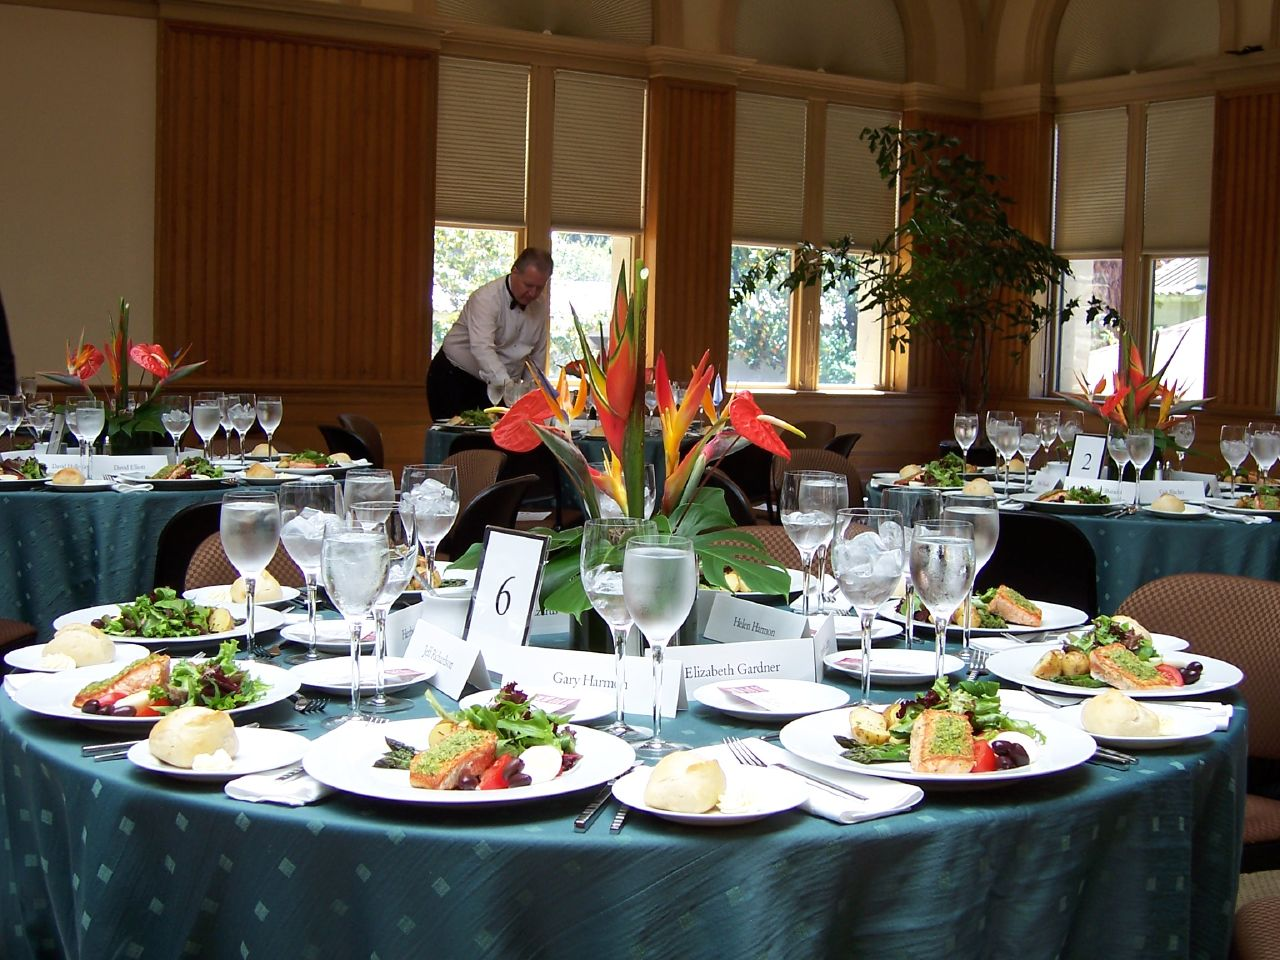 Catering Your Rehearsal Dinner with Savory Catering in Dallas, Texas!